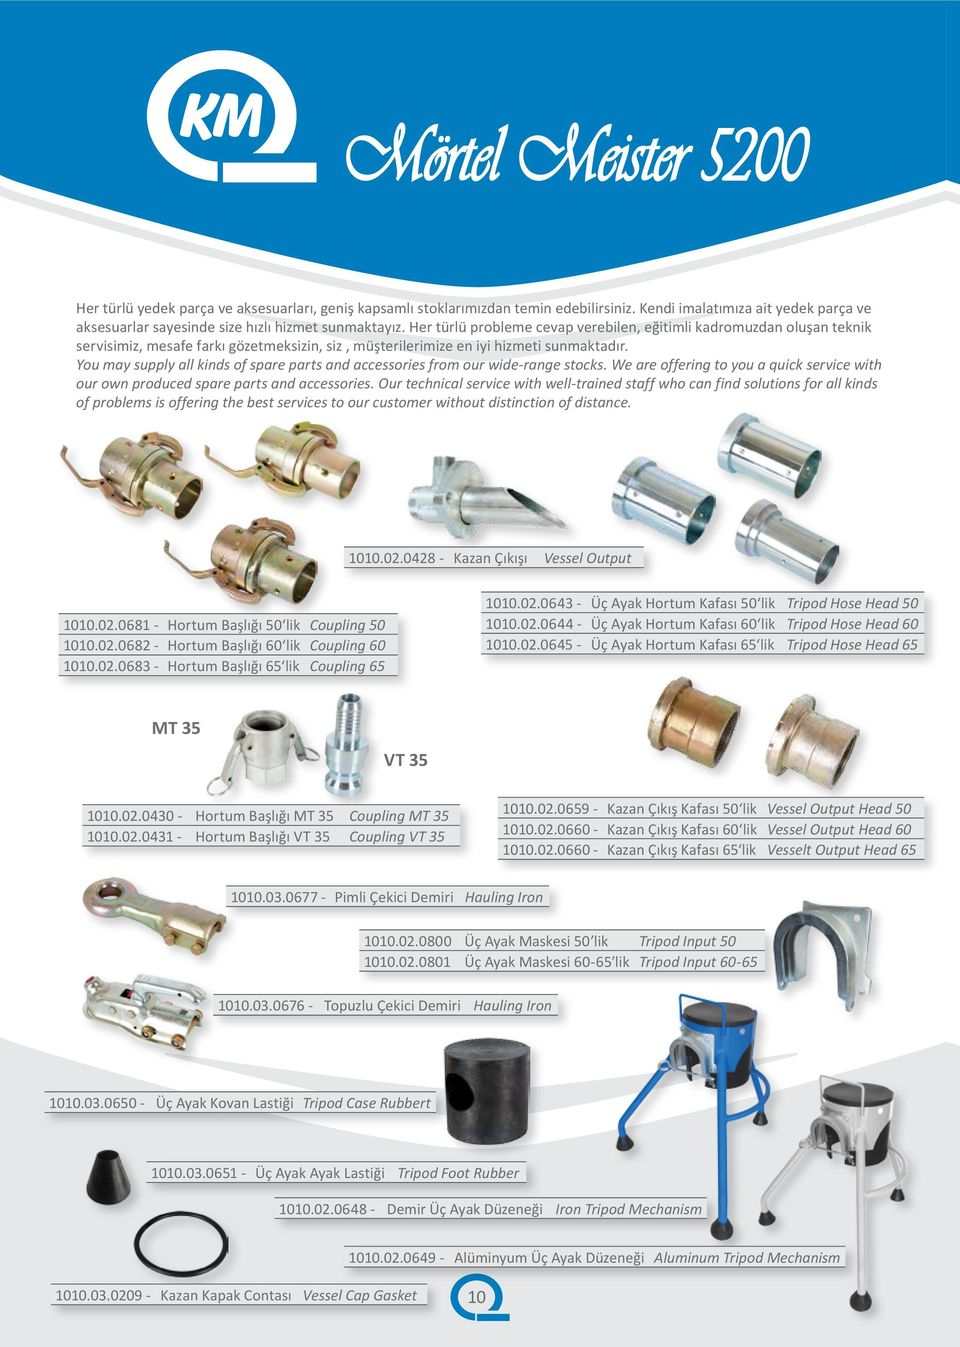 You may supply all kinds of spare parts and accessories from our wide-range stocks. We are offering to you a quick service with our own produced spare parts and accessories.